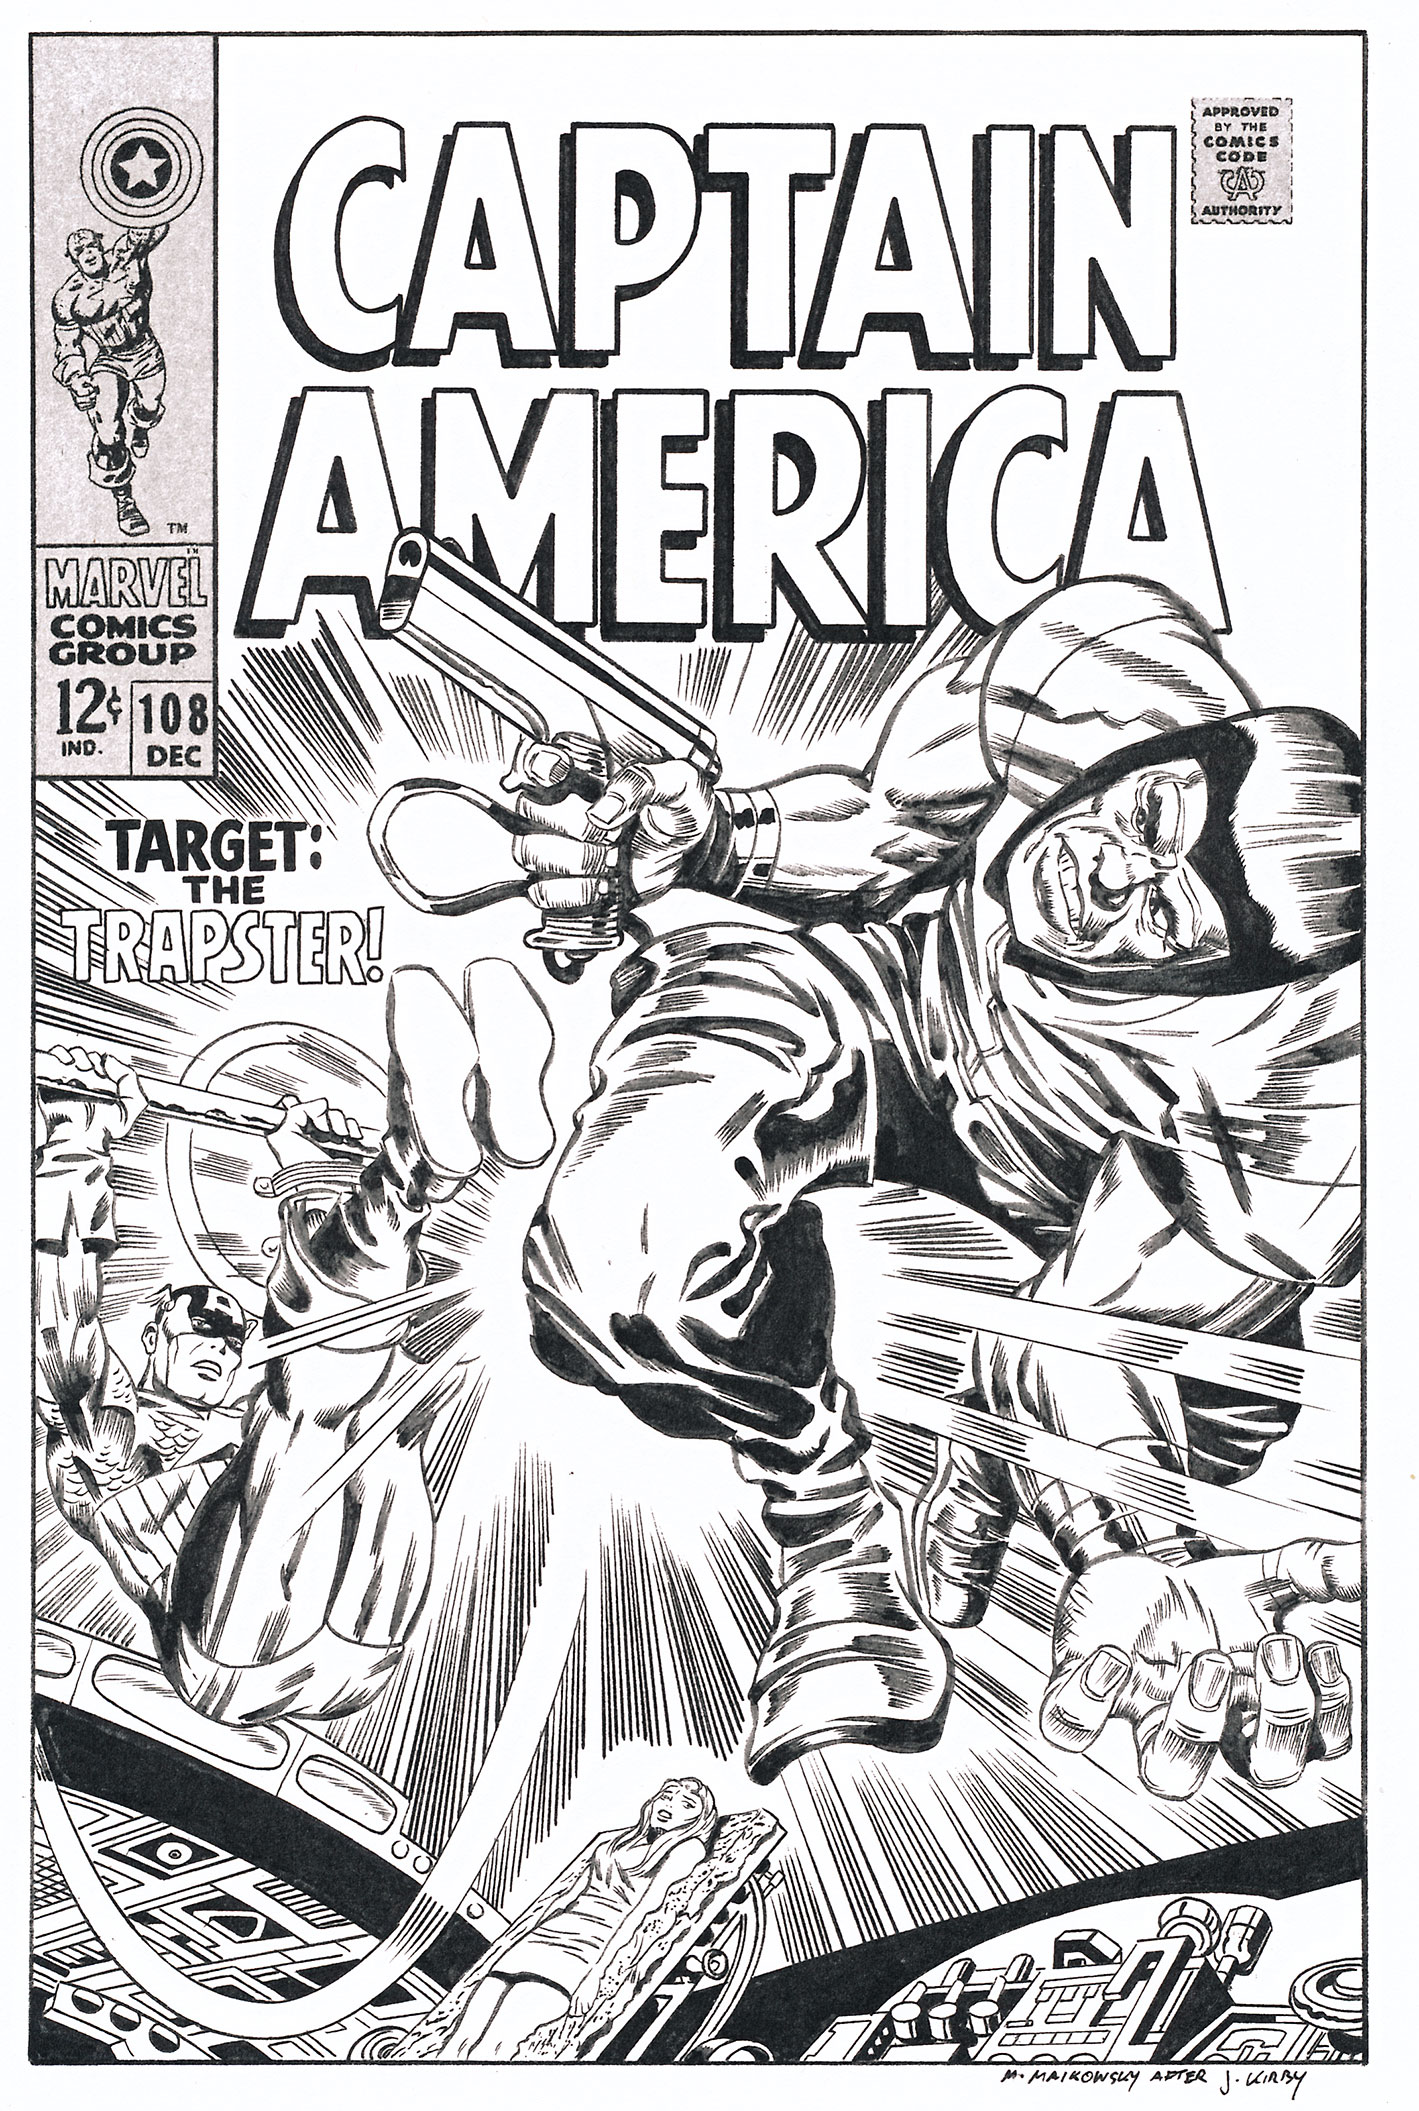 MIKE MALKOWSKY CAPTAIN AMERICA #108 COVER Comic Art